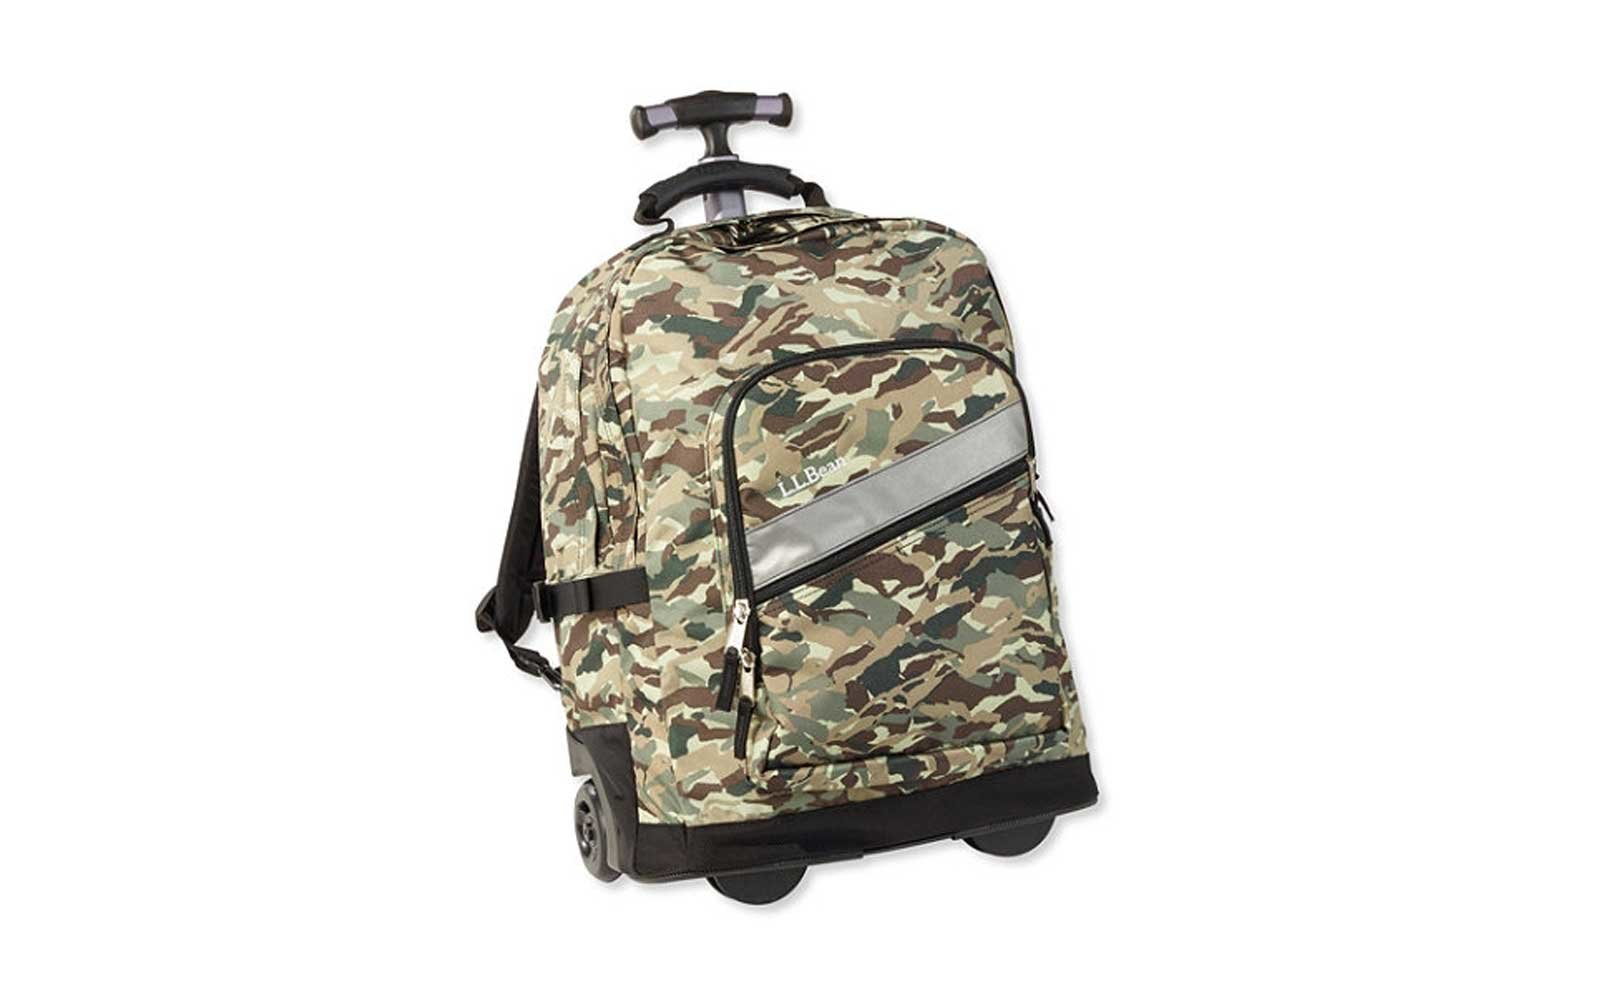 L.L. Bean deluxe rolling backpack